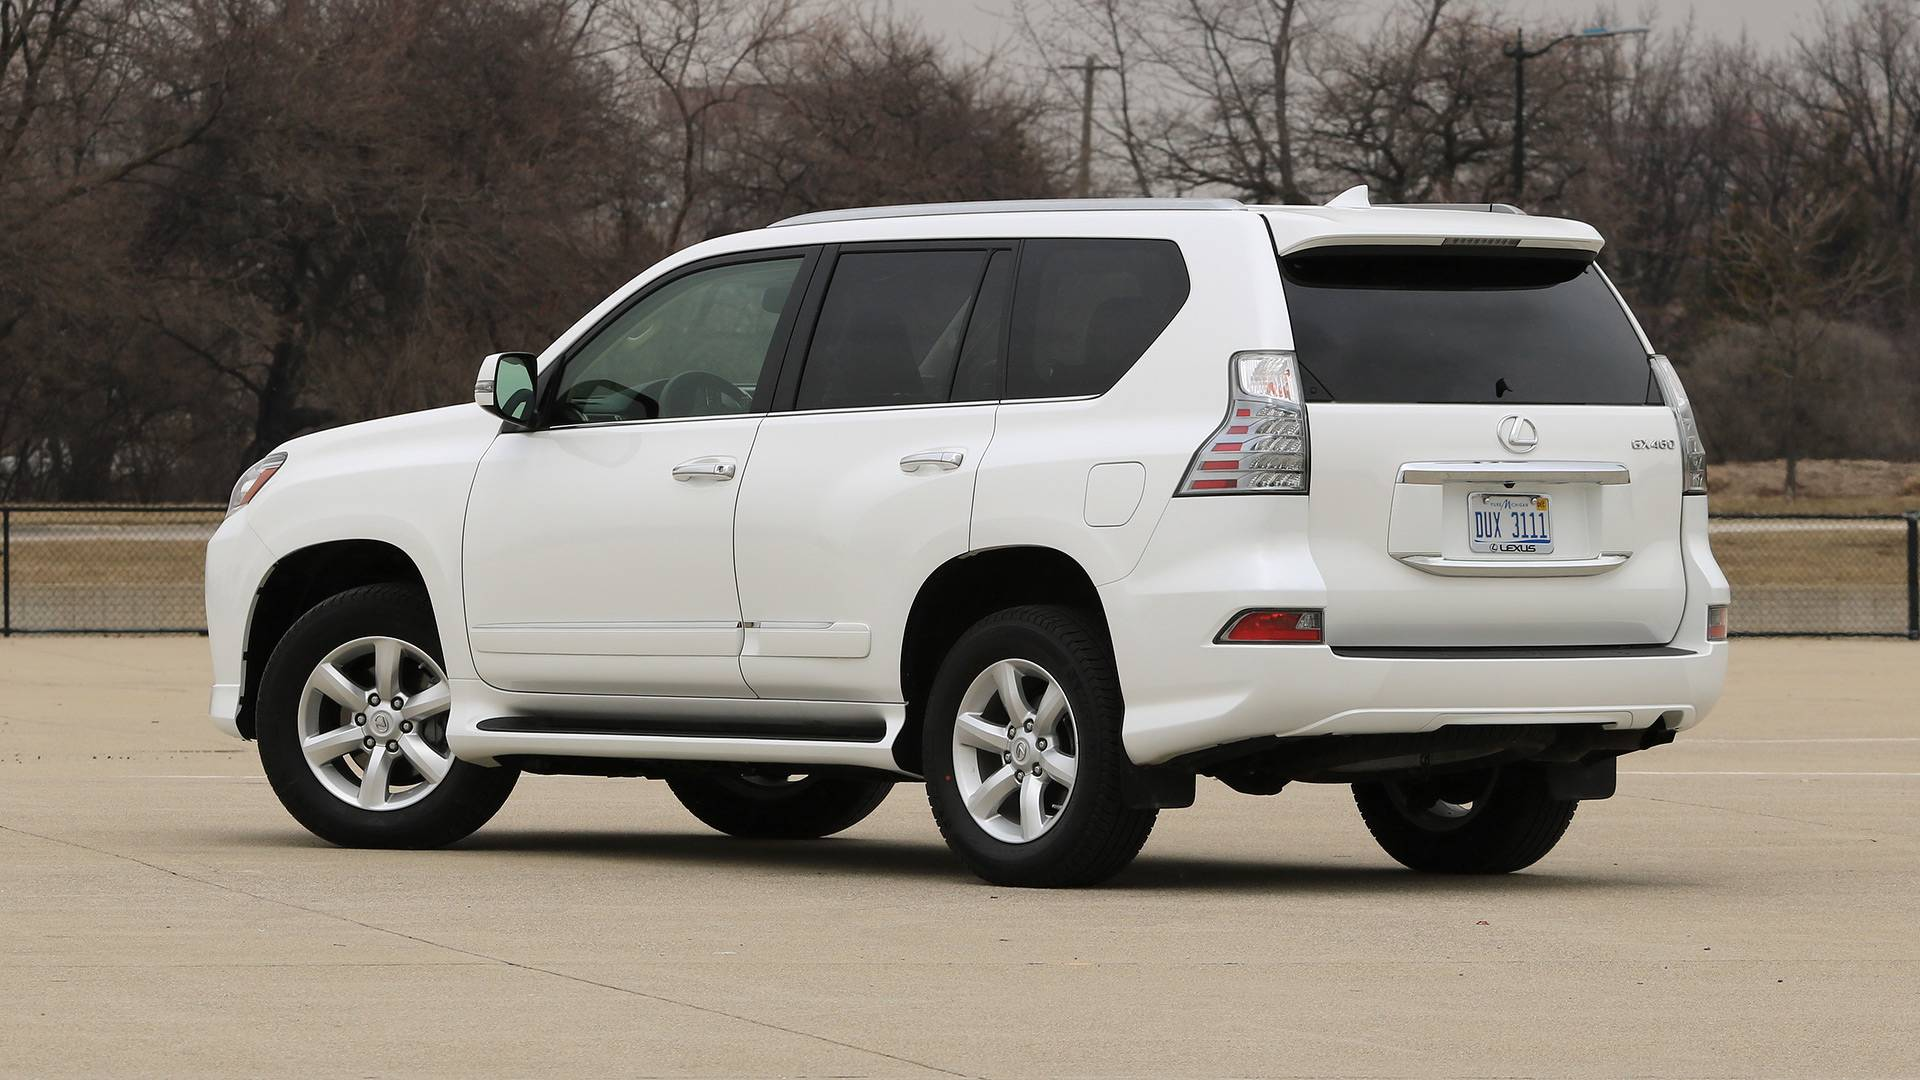 2018 Lexus GX460: What Should We Expect? >> 2018 Lexus Gx 460 Review Old School And Proud